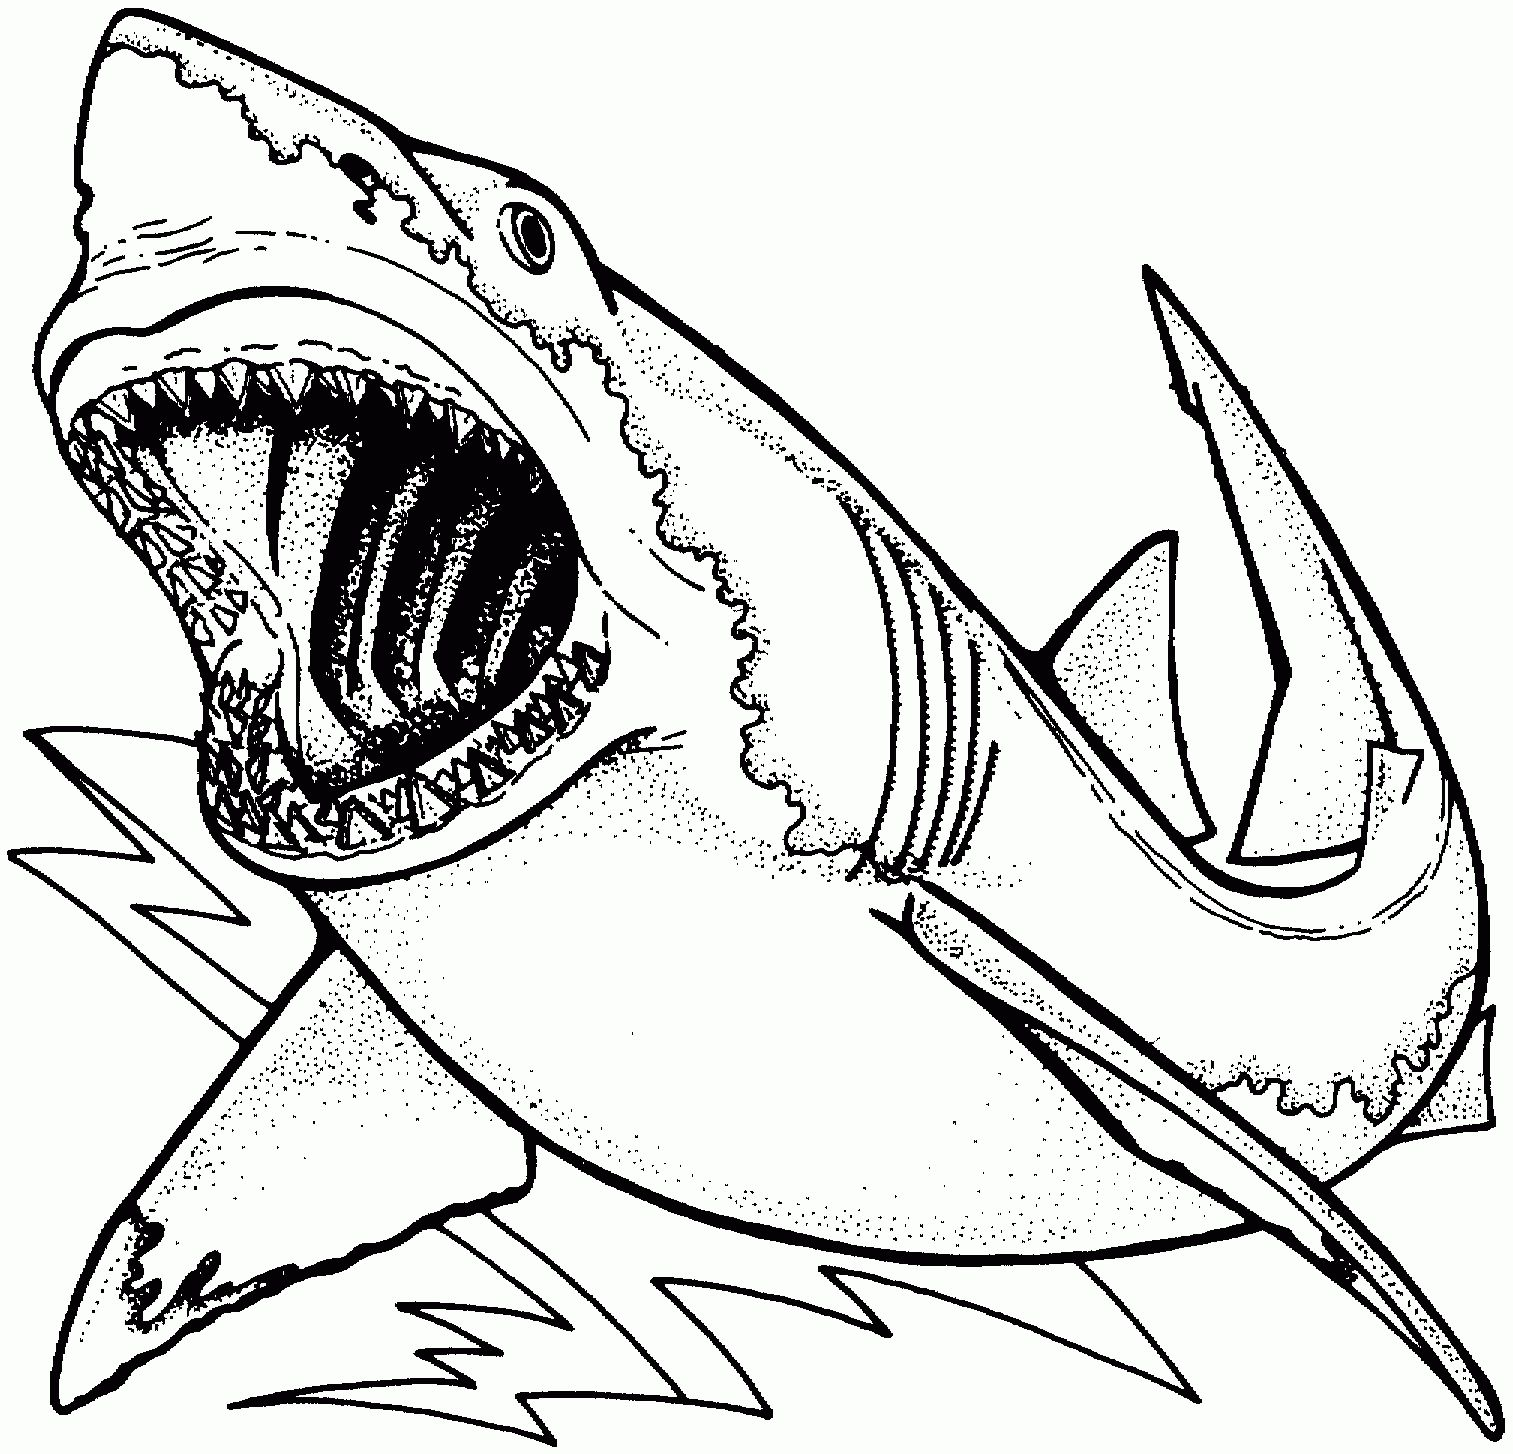 Megalodon Shark And Jurassic World Mosasaur Dinosaurs Color Pages